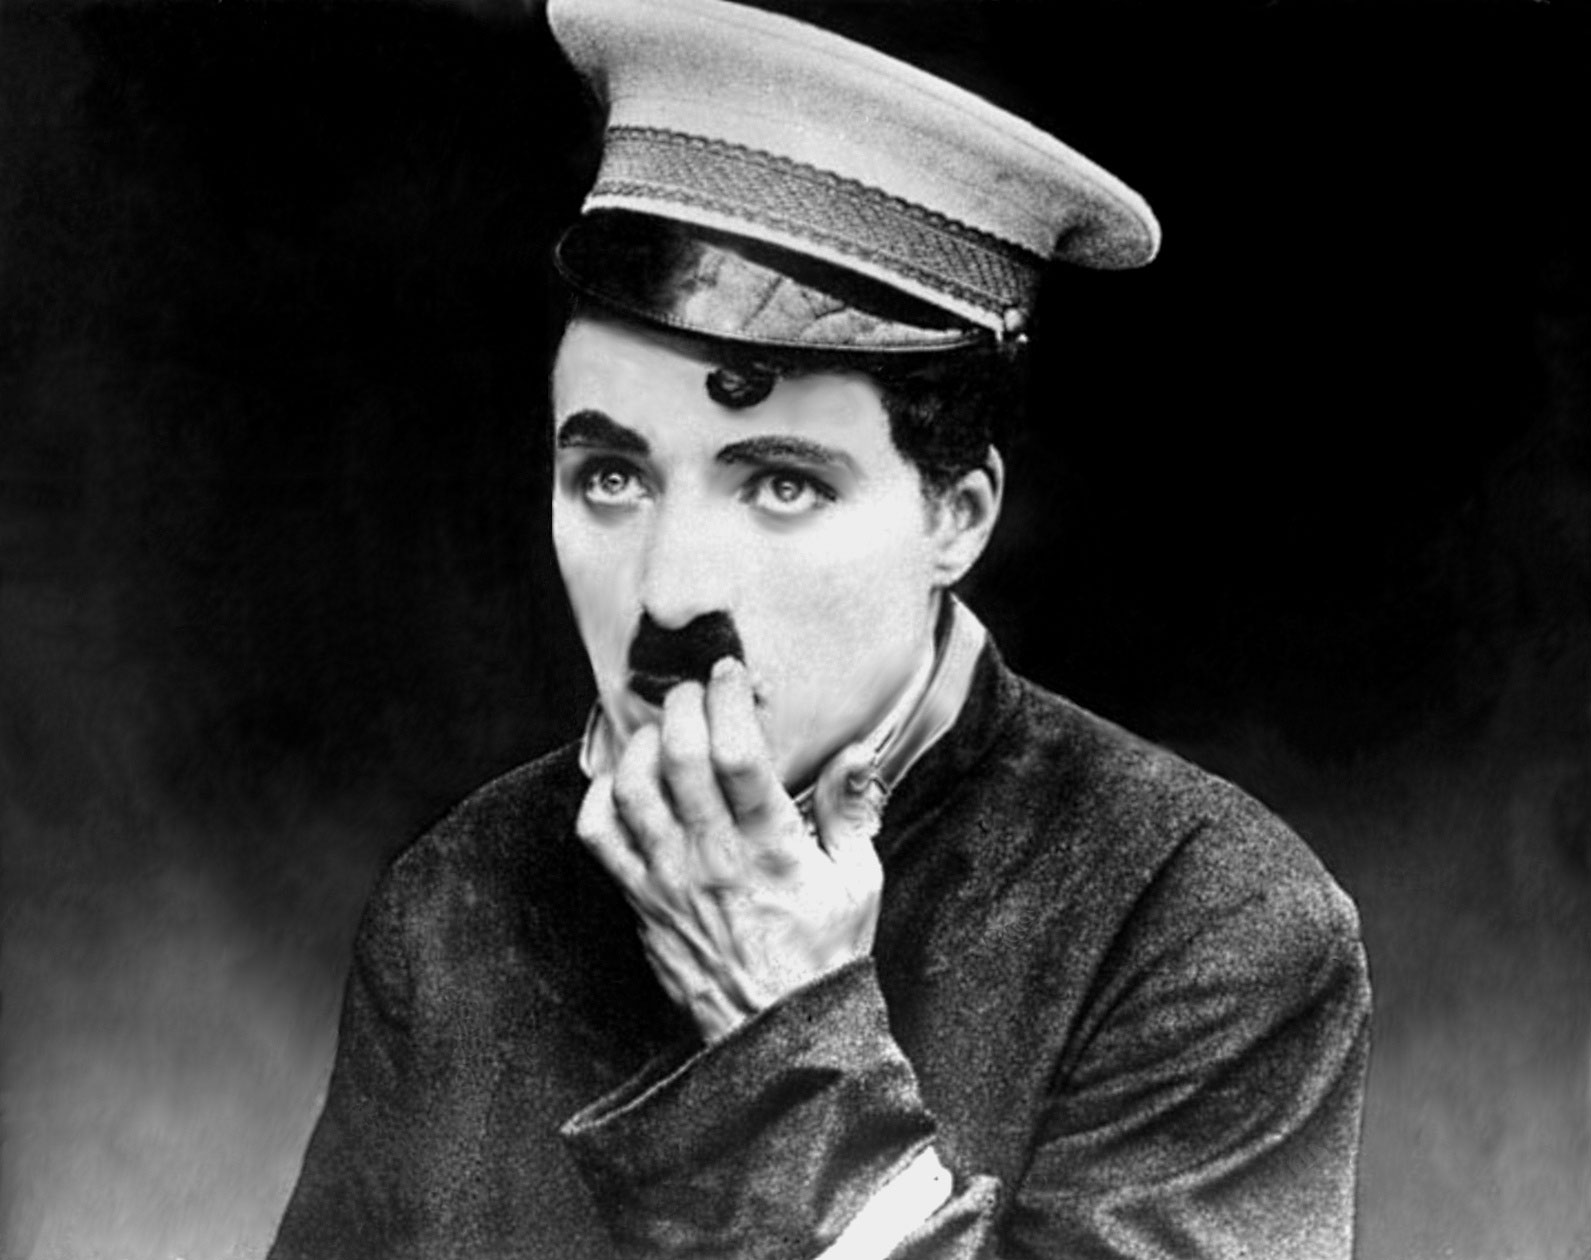 7 Art Cinema | Charlie Chaplin | Le Kid - The Kid (1921), L'Opinion publique - A Woman of Paris (1923), La Ruée vers l'or - The Gold Rush (1925), Le Cirque - The Circus (1928), Les Lumieres de la ville - City Lights (1931), Les Temps modernes - Modern Times (1936), Le Dictateur - The Great Dictator (1940), Monsieur Verdoux - Monsieur Verdoux (1947), Les Feux de la rampe - Limelight (1952), Un roi  New York - A King in New York (1957), La Comtesse de Hong-Kong - A Countess from Hong Kong (1967) | United Artists, Keystone Film Company, Essanay Film Manufacturing Compagny, Mutual | Courts Métrages, Long métrages | Réalisateur de cinéma, Producteur, Metteur en Scene, Compositeur, Scénariste, Acteur | Charlie Chaplin 1889 - 1977 | Photographie